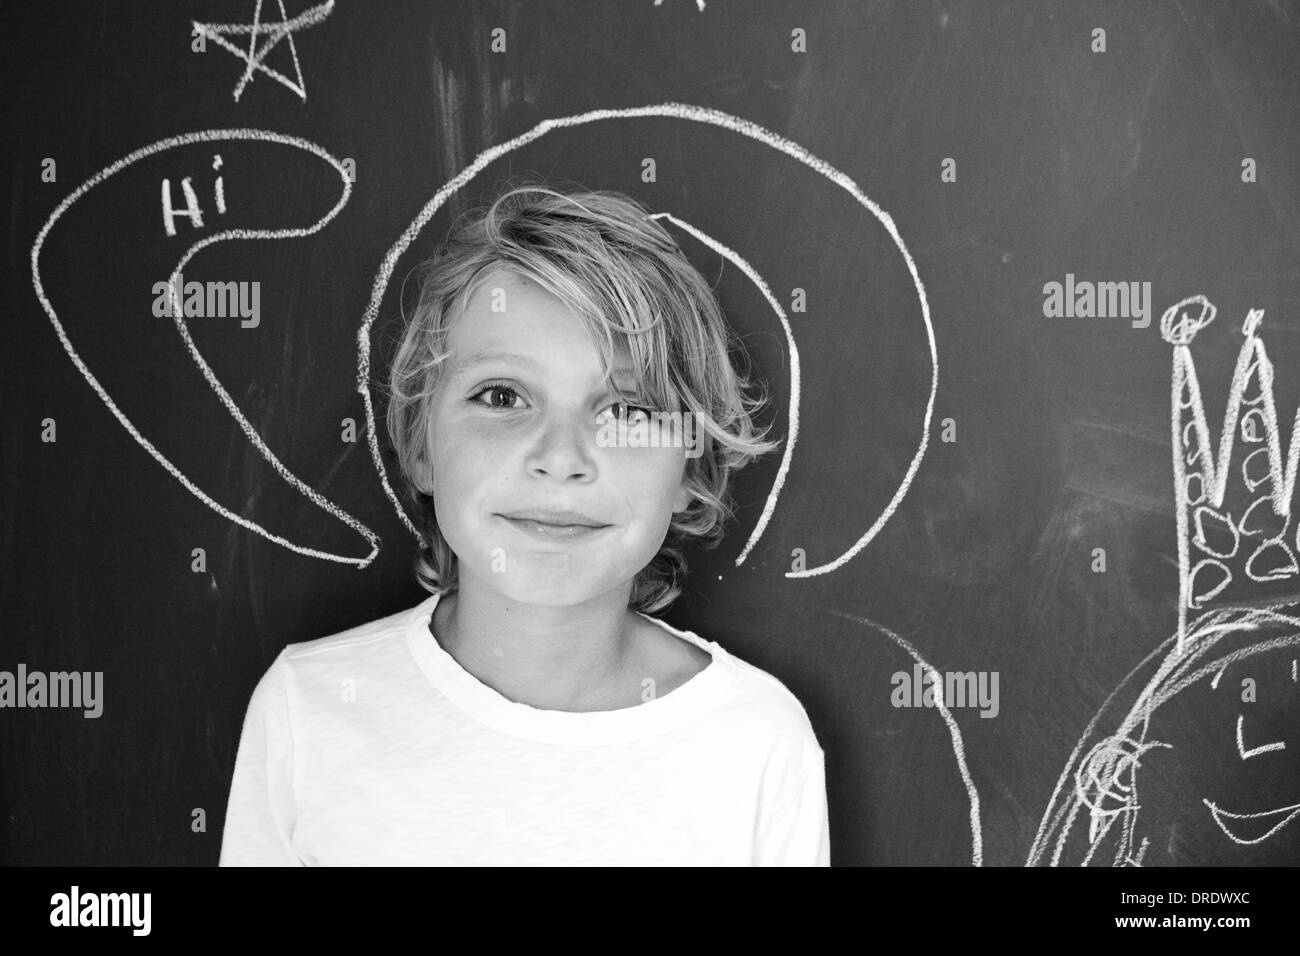 Boy standing in front of chalkboard wall, black and white - Stock Image